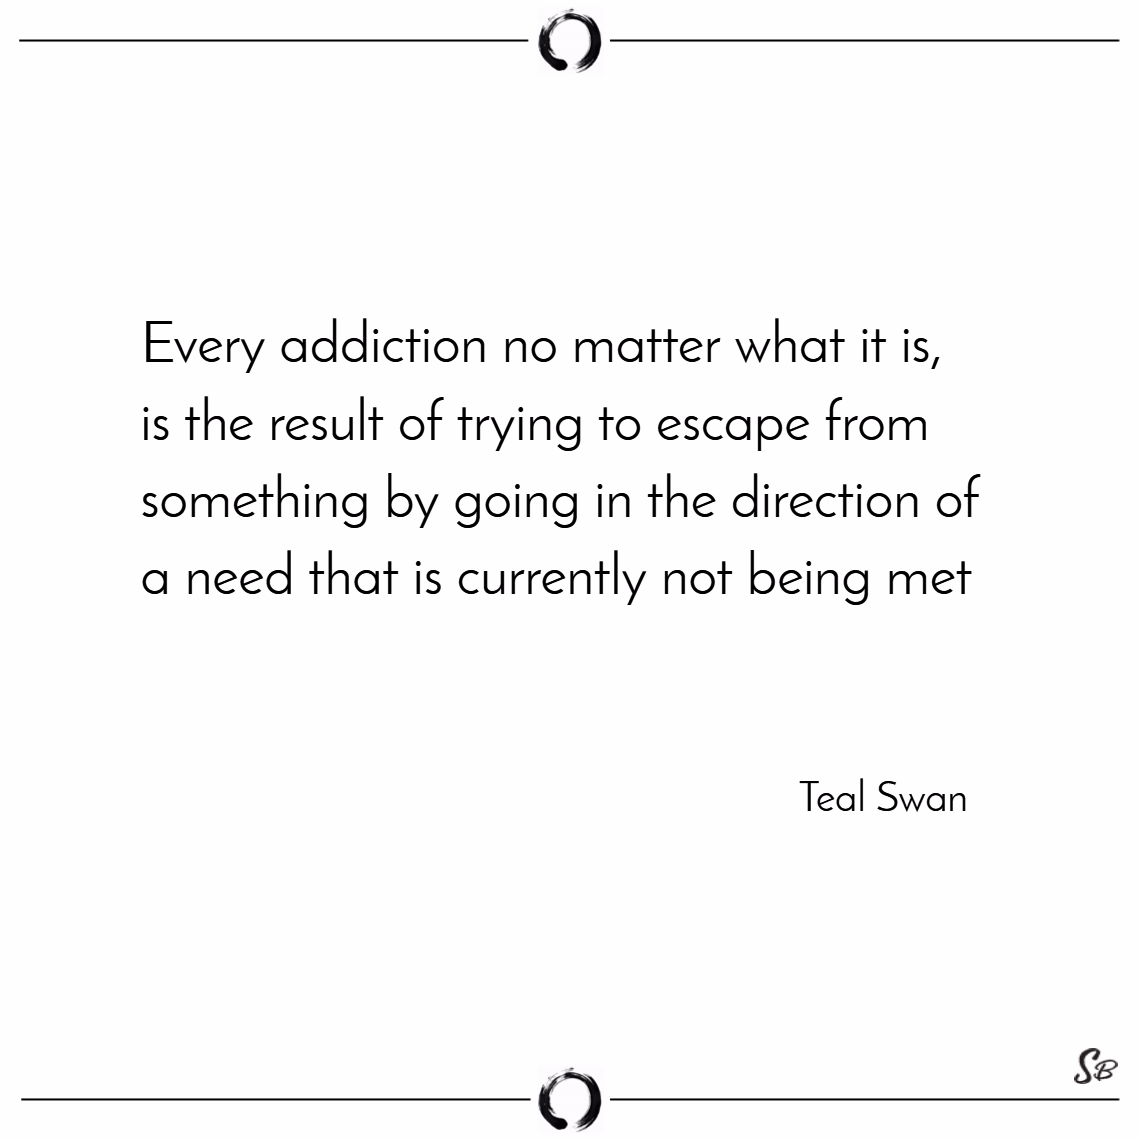 Every addiction no matter what it is, is the result of trying to escape from something by going in the direction of a need that is currently not being met. – teal swan